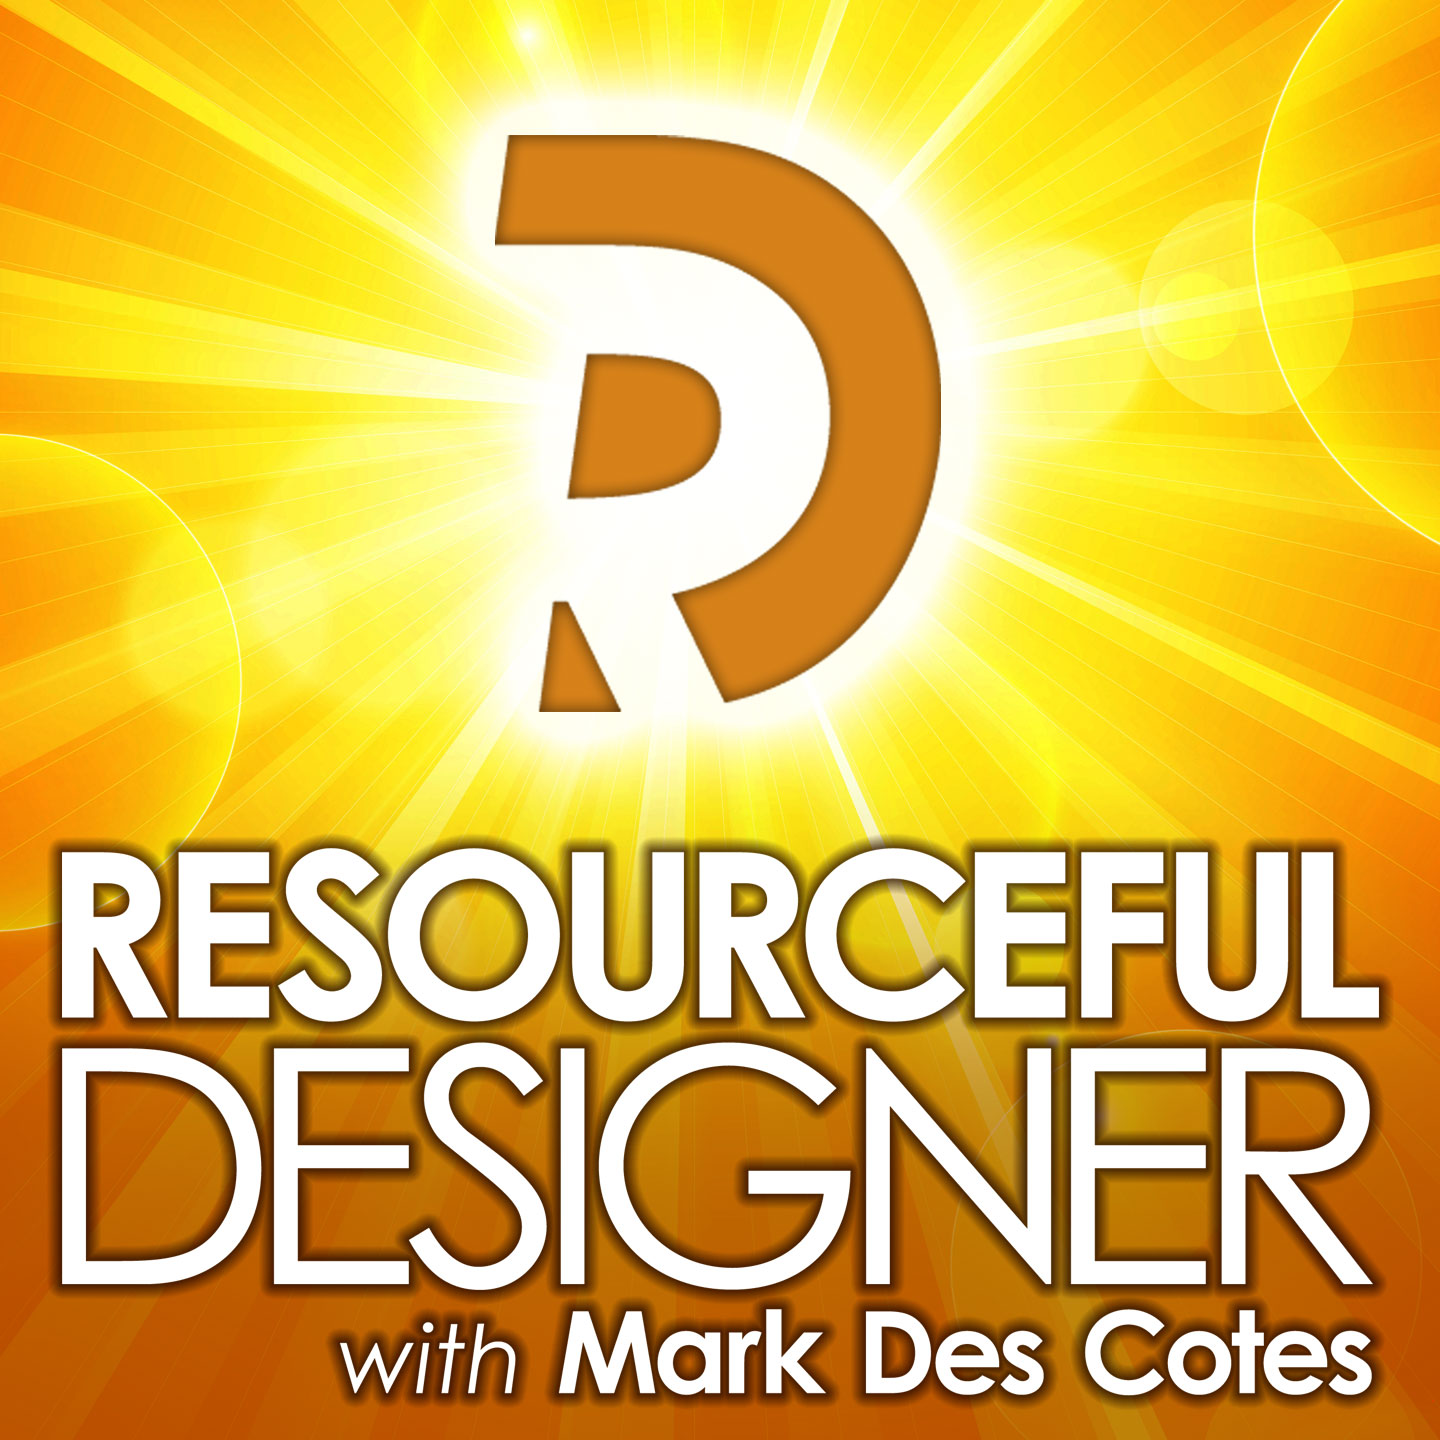 Resourceful Designer - Resources to help streamline your graphic design and web design business.